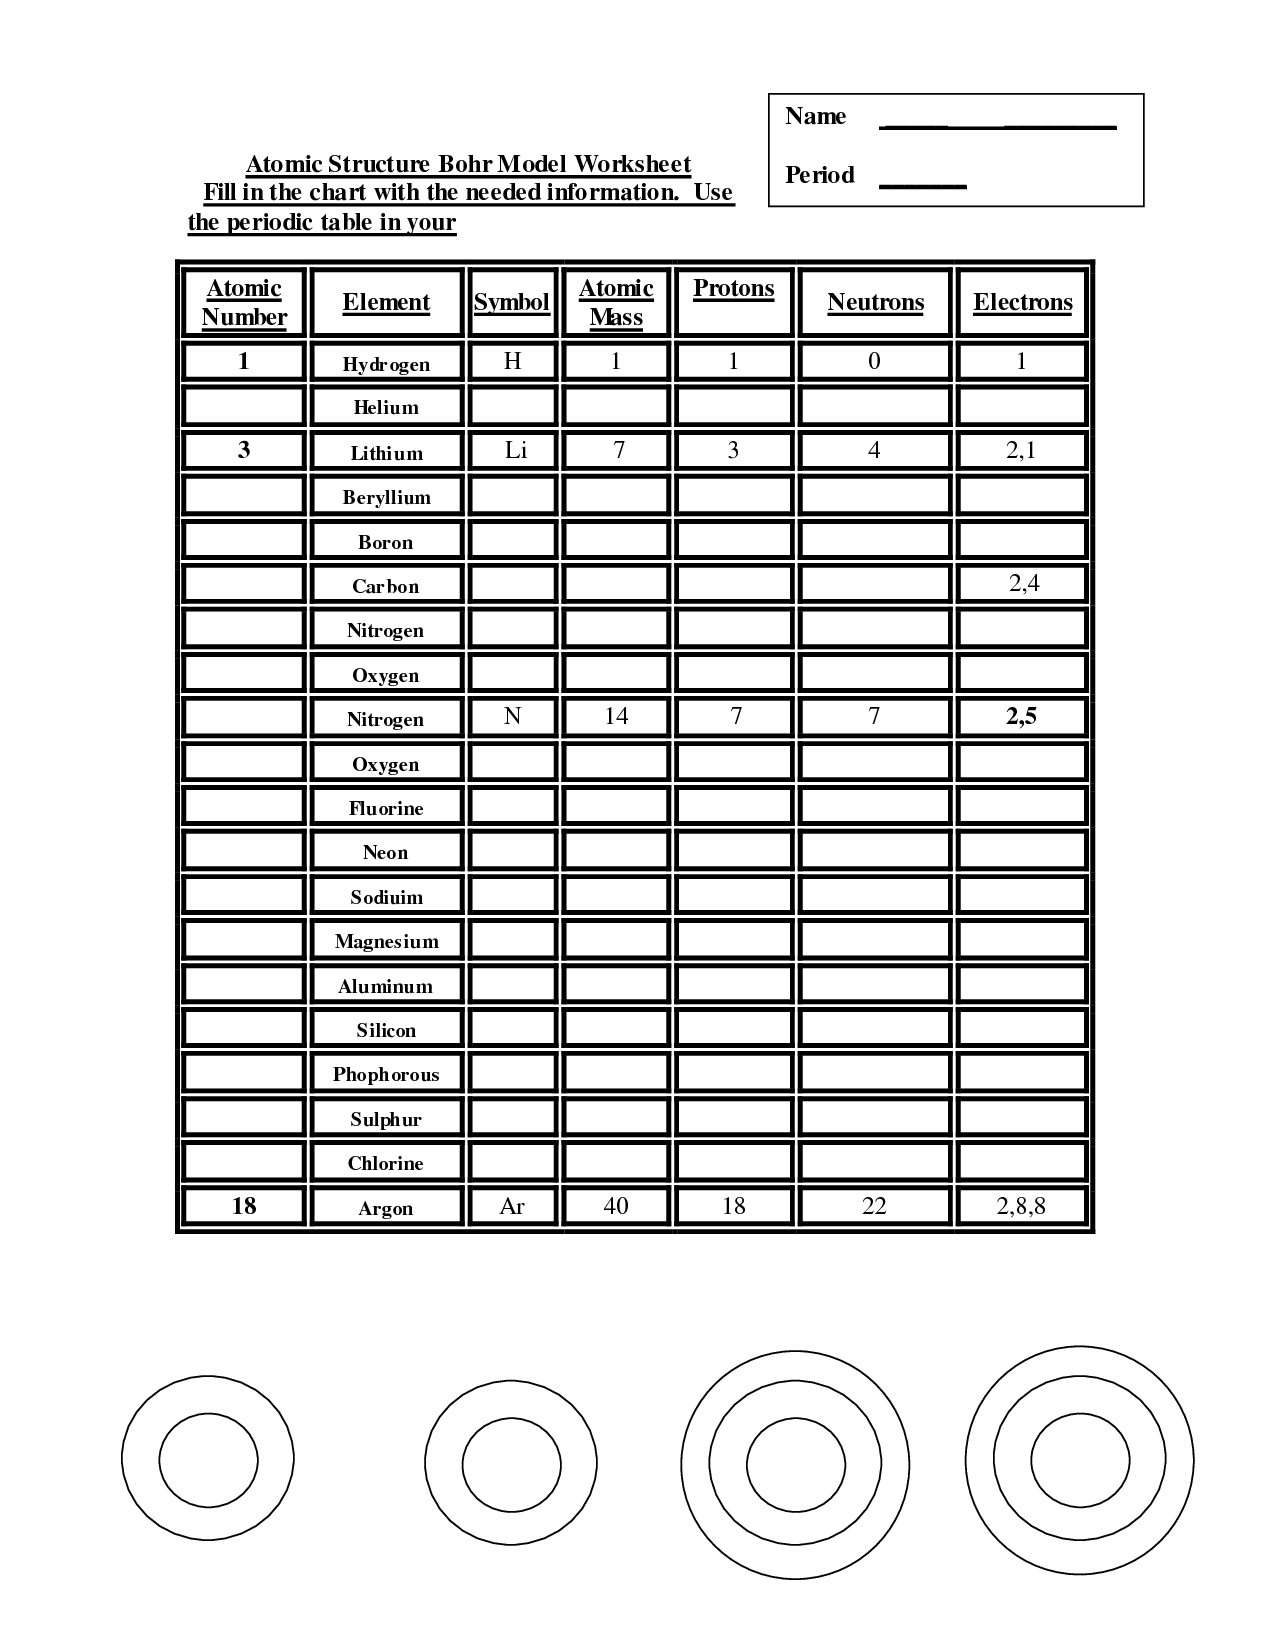 Bohr Model Atomic Structure Worksheet Answer Sheet